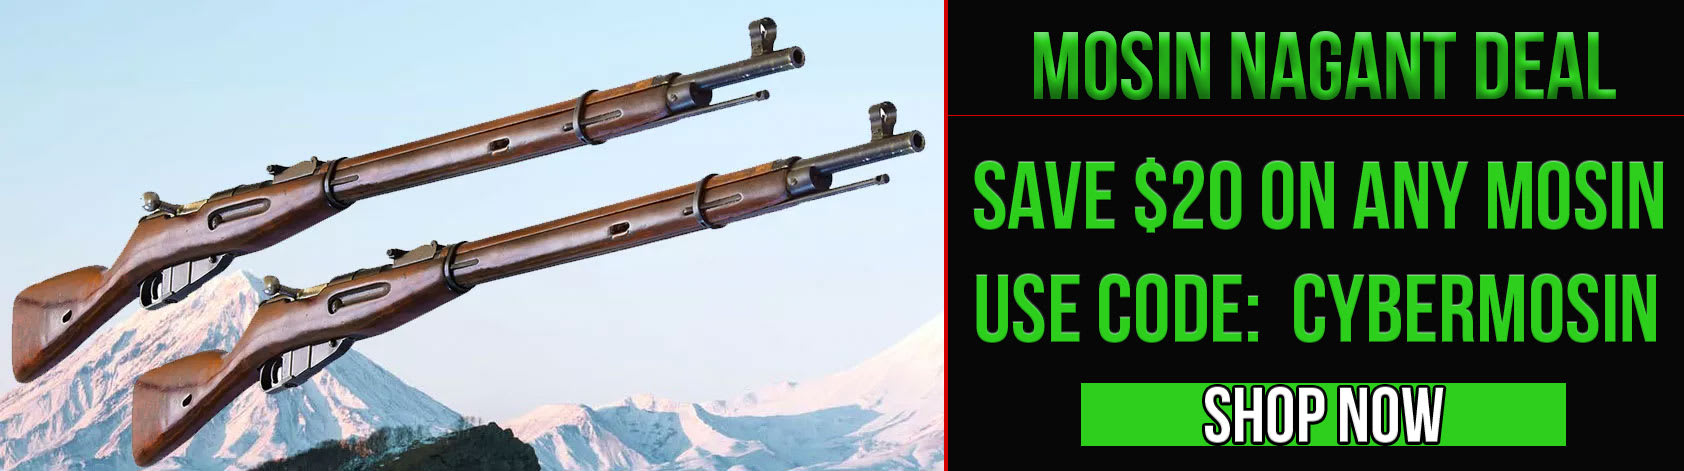 Mosin Nagant rifles now available